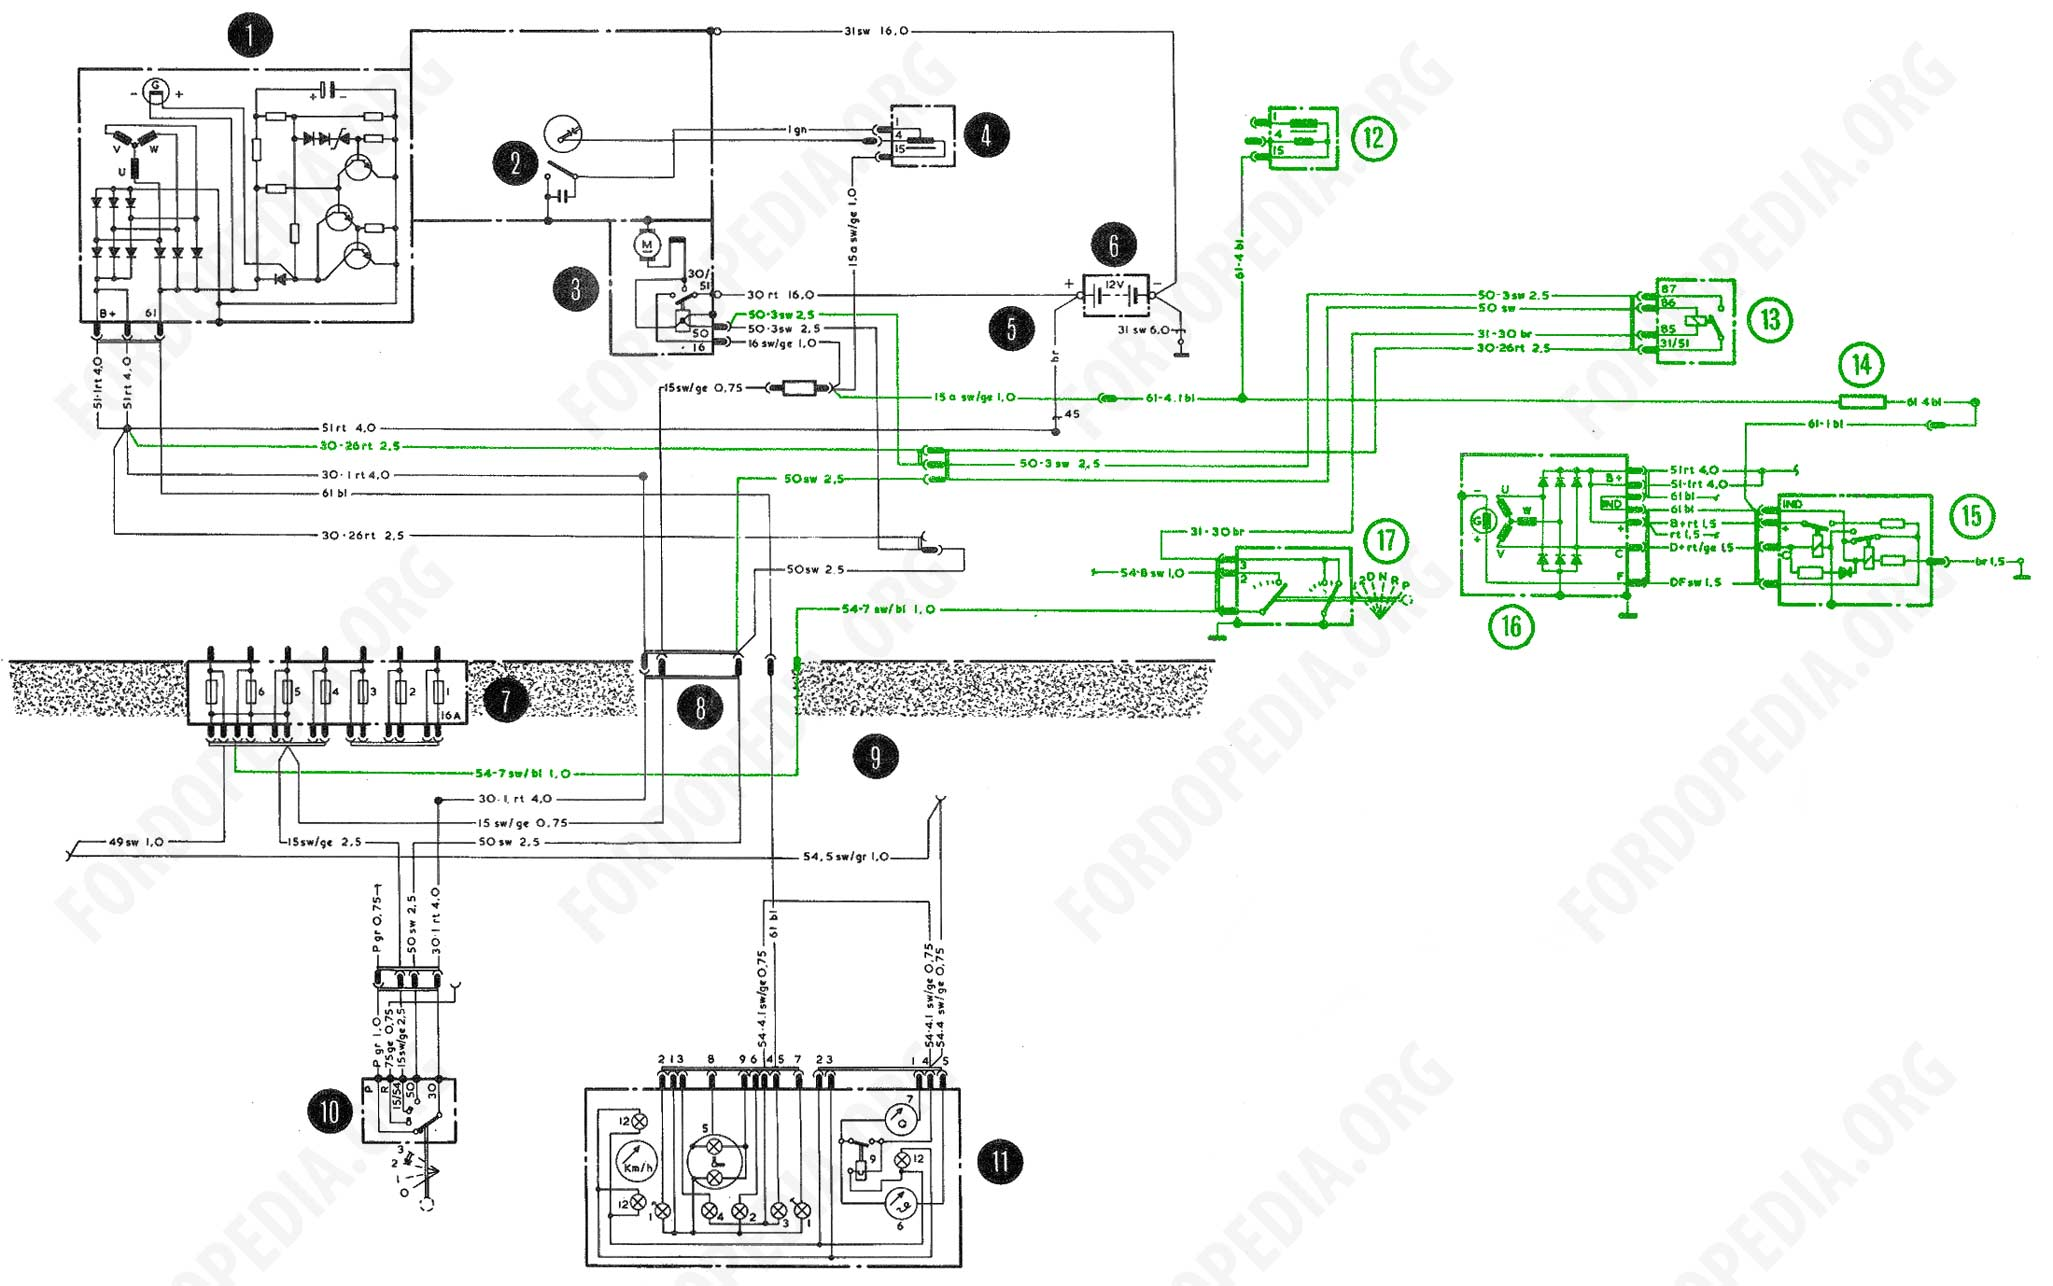 10 3 Wire For Dryer Diagram Download Full Size Image 2056x1283 220 Kb Wiring Diagrams Taunus Tc2 Cortina Mk4 Base Version L Gl